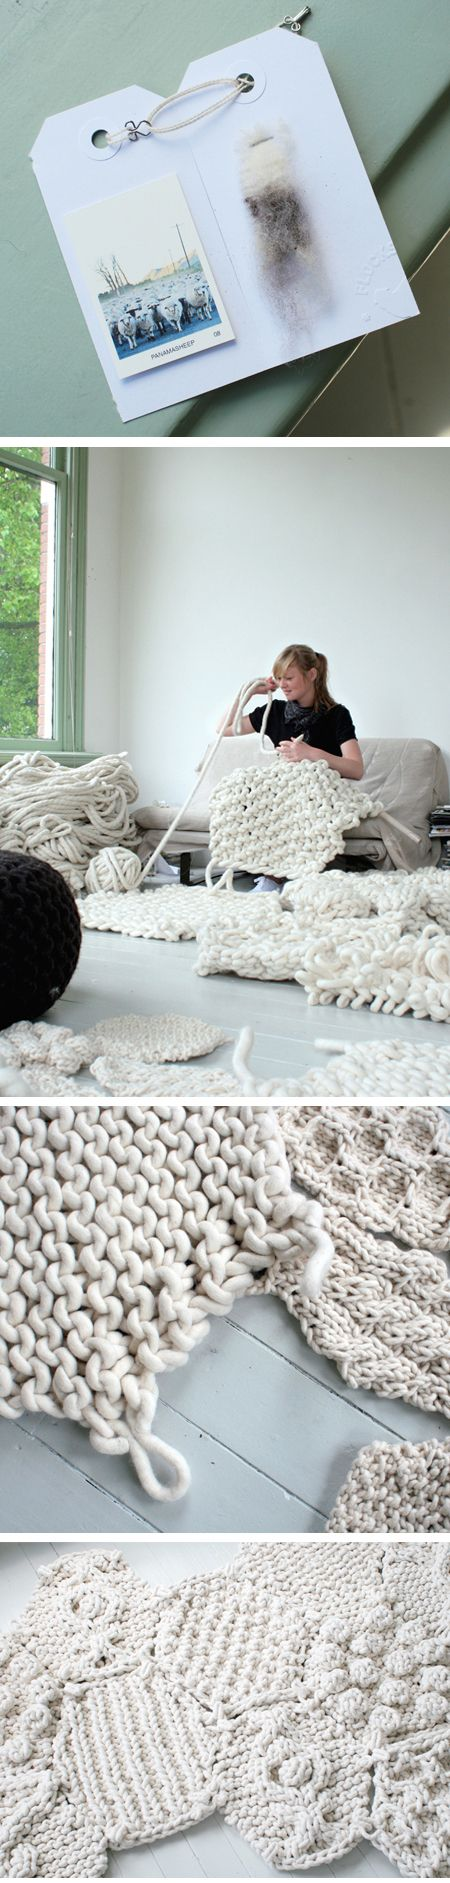 christienmeindertsma.  I confess to a recent obsession with knitting giant things with giant yarn.  Check out the article on the blog about a rug project using super bulky wool made from the wool of a single flock of sheep, one sheep at a time.